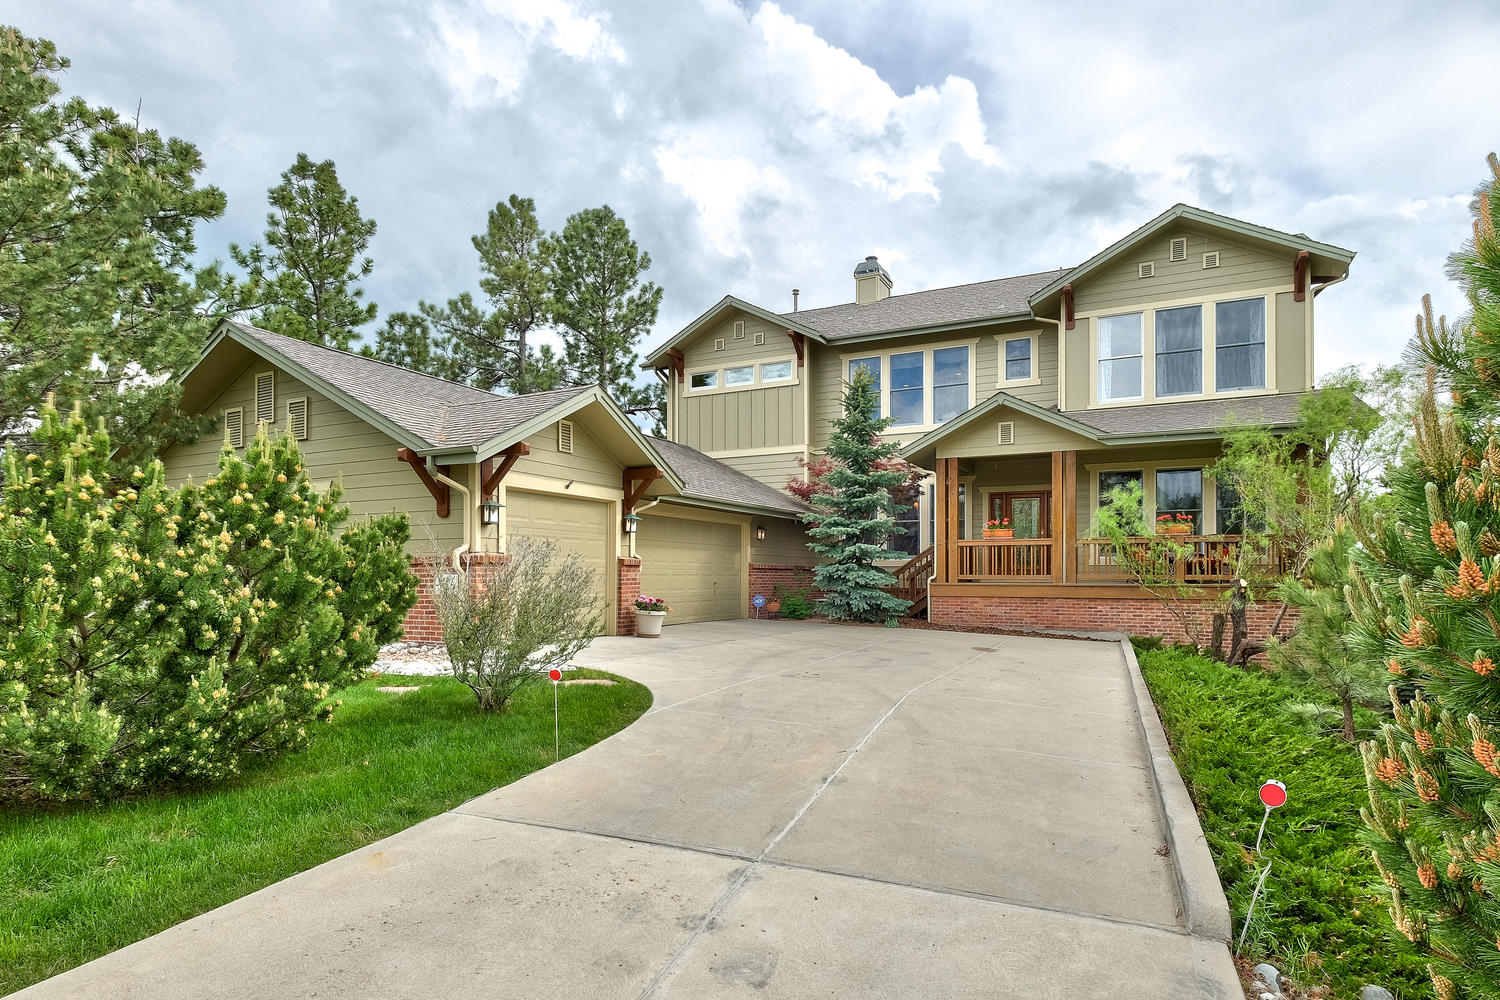 Single Family Home for Sale at 7092 Forest Ridge Cir Castle Pines North, Castle Pines, Colorado, 80108 United States